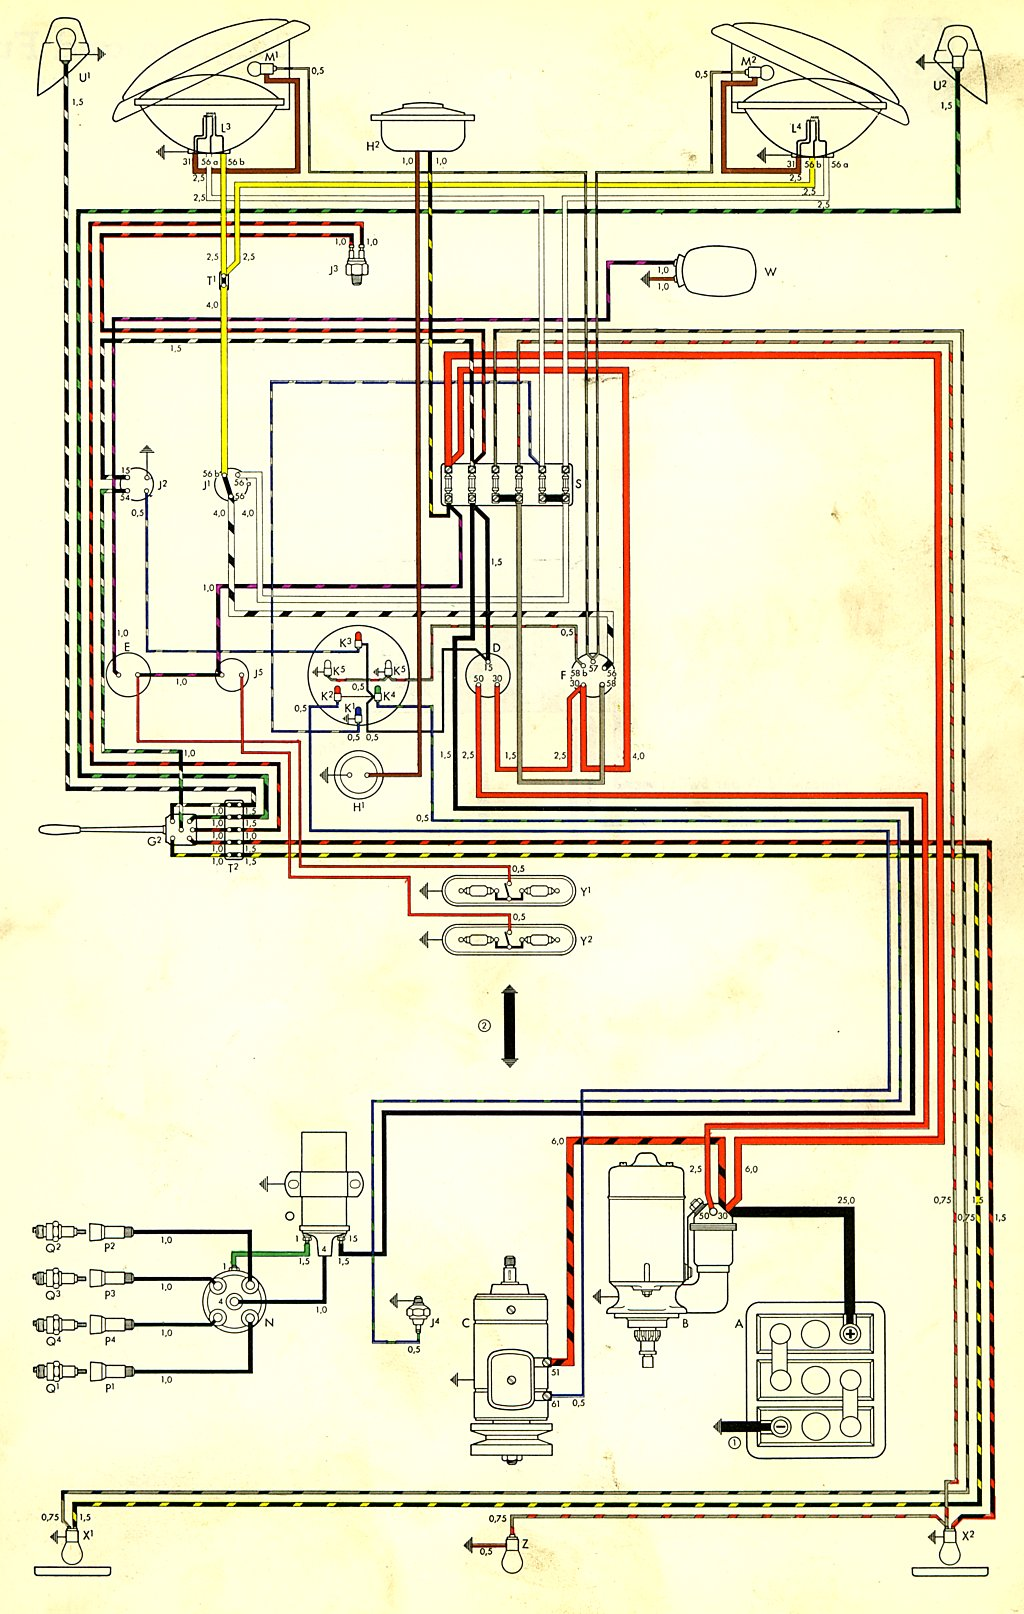 thesamba com type 2 wiring diagrams rh thesamba com 1969 VW 1600 Wiring-Diagram 1967 VW Wiring Diagram Radio